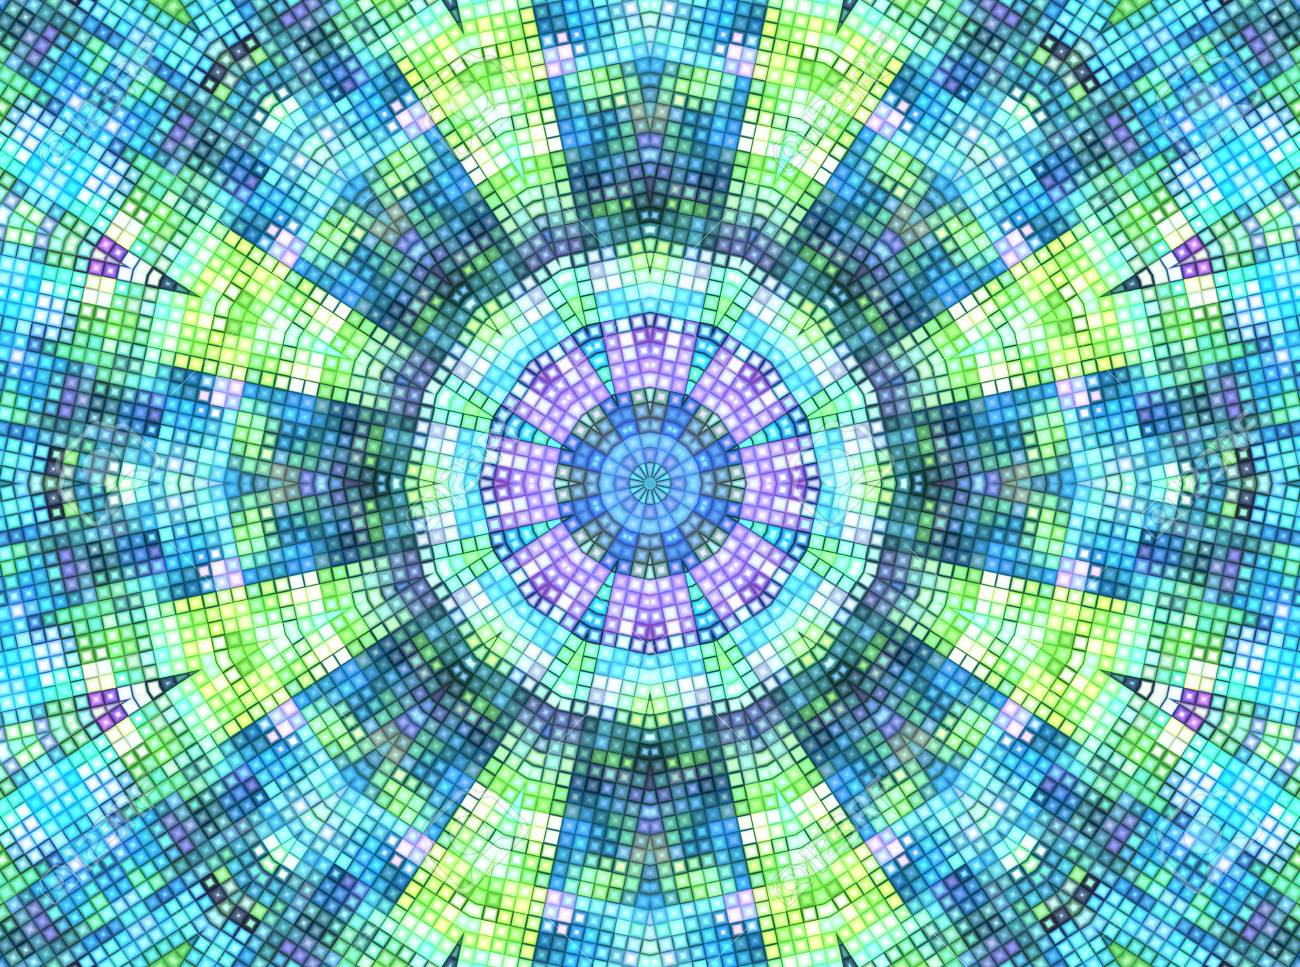 Bright Motley Background With Concentric Mosaic Pattern Stock 1300x967